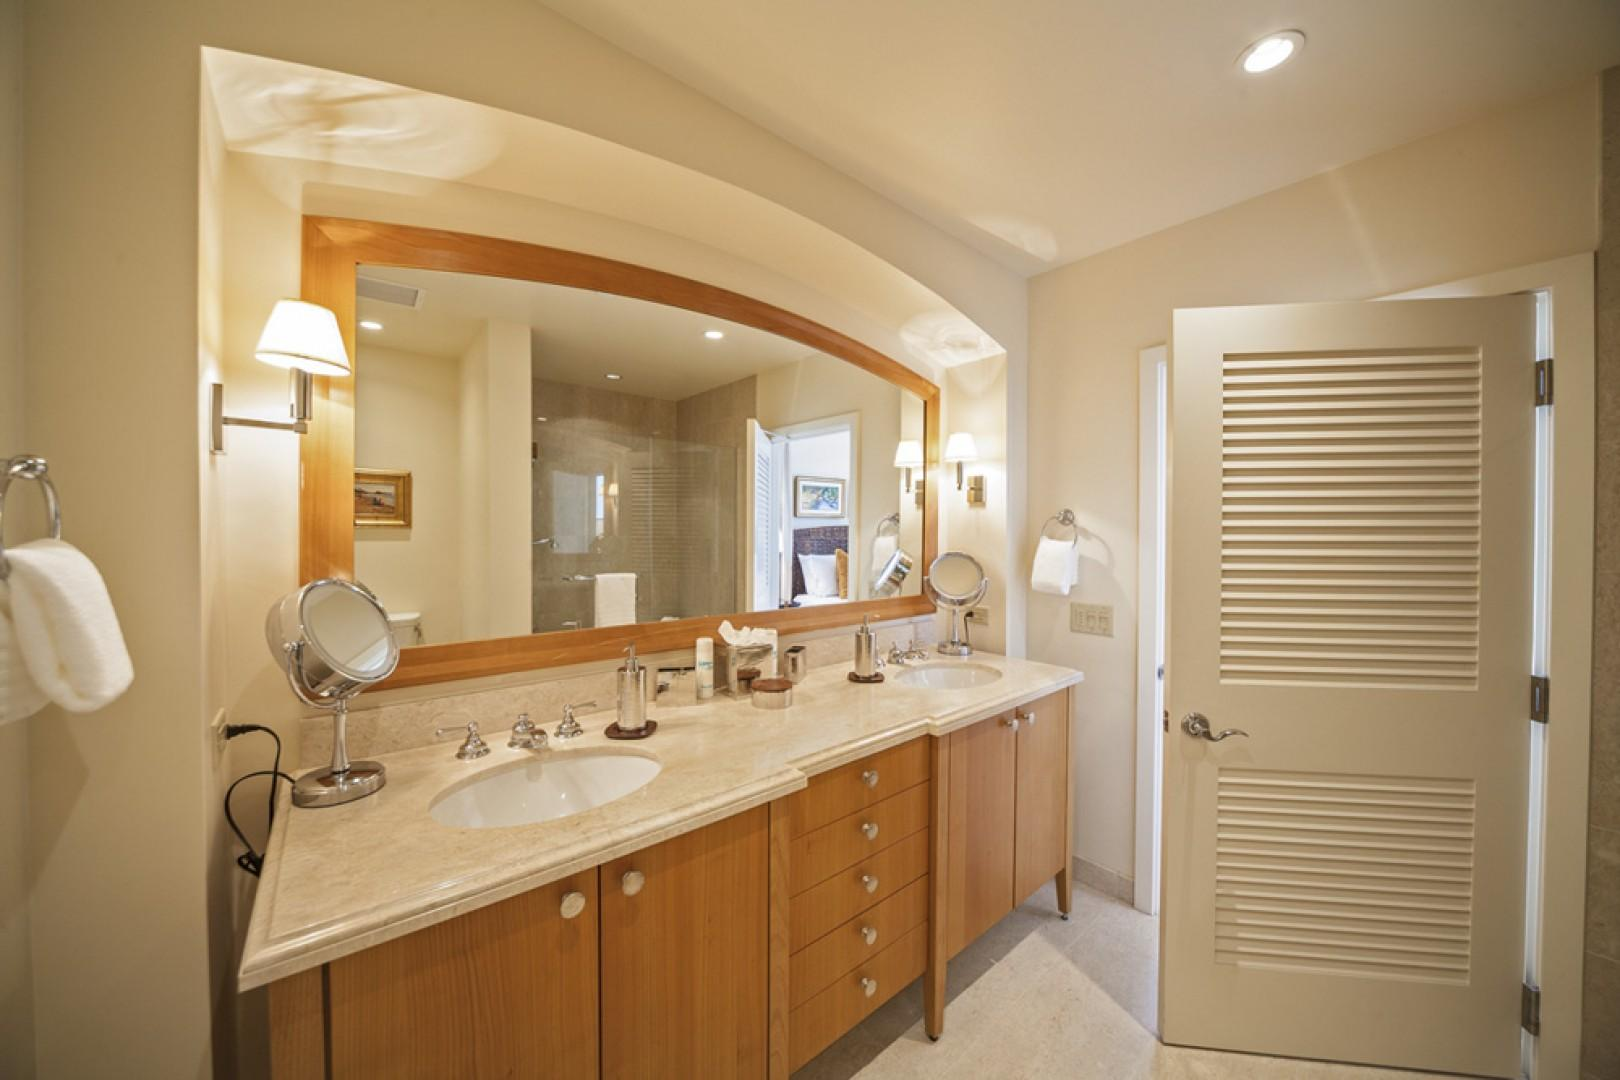 Second master bedroom en suite bath with glass shower, dual vanities, and two closets.